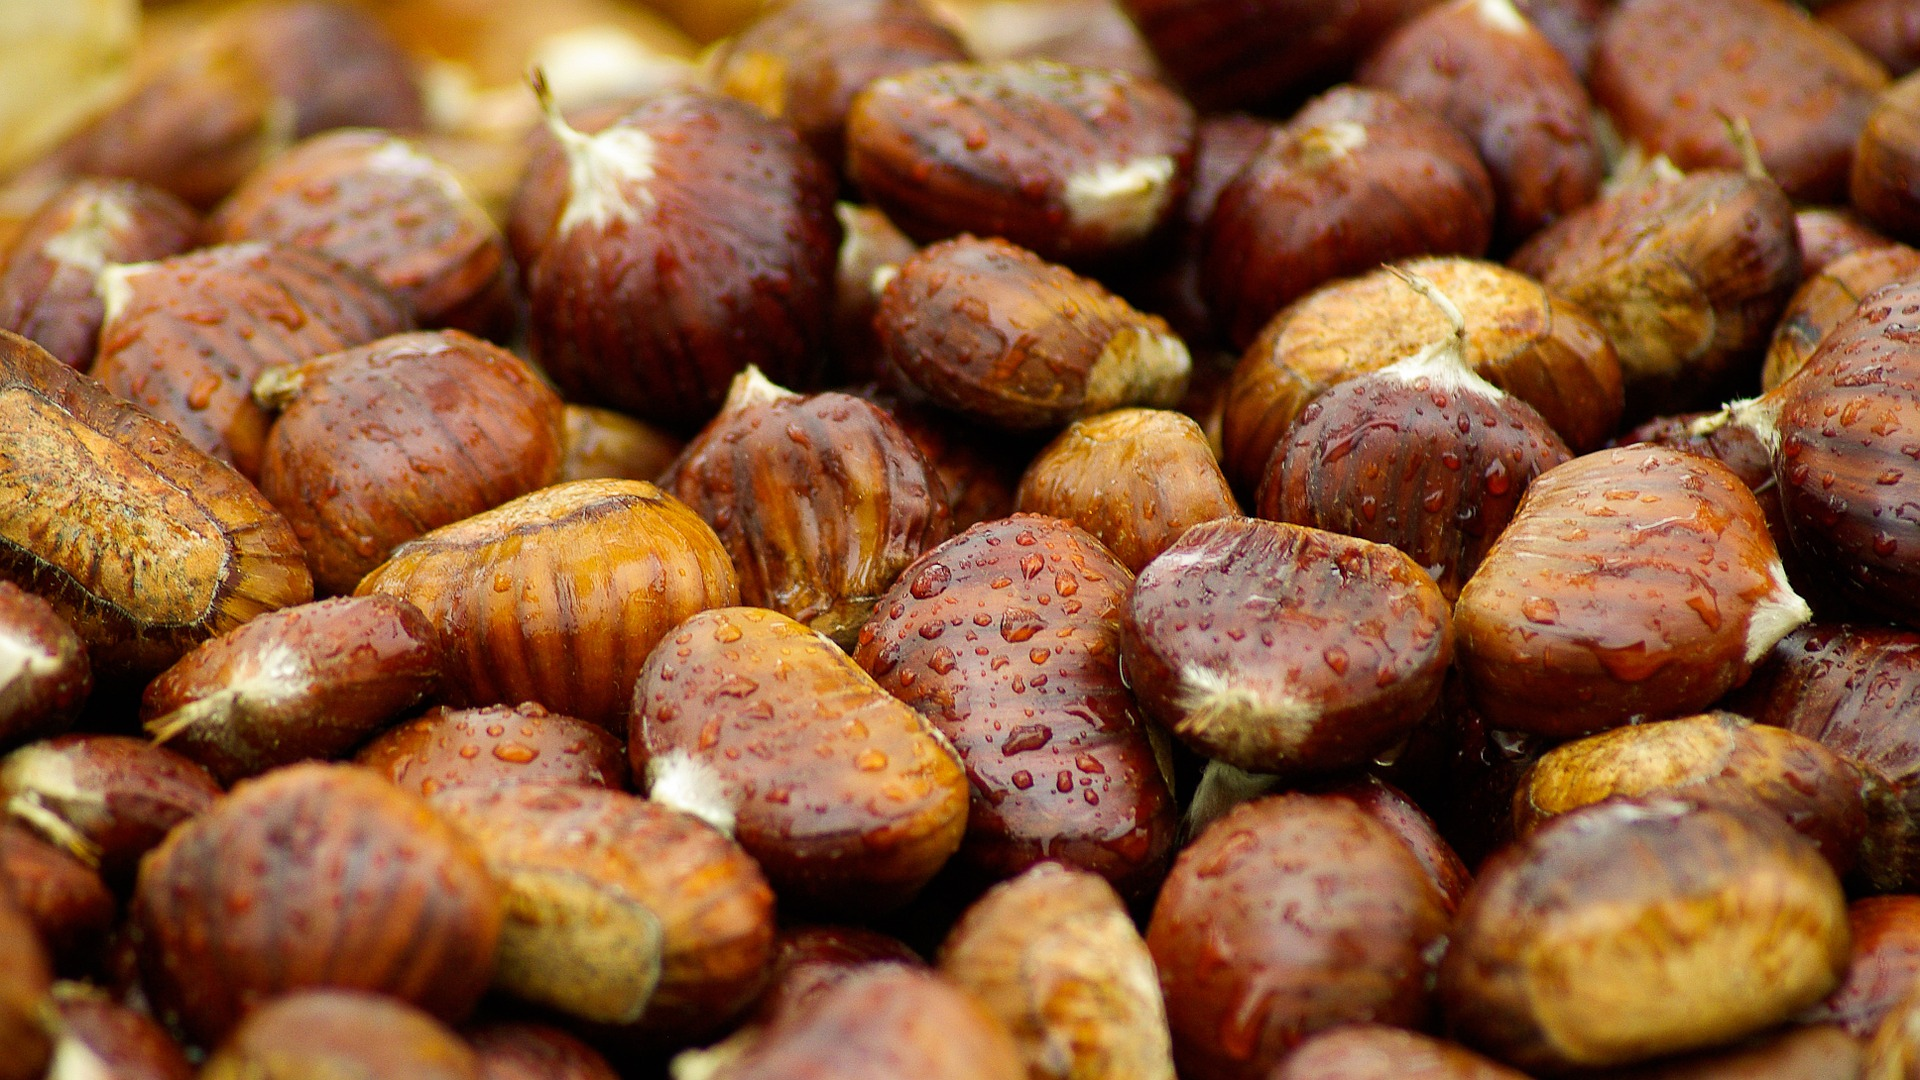 chestnuts with water droplets